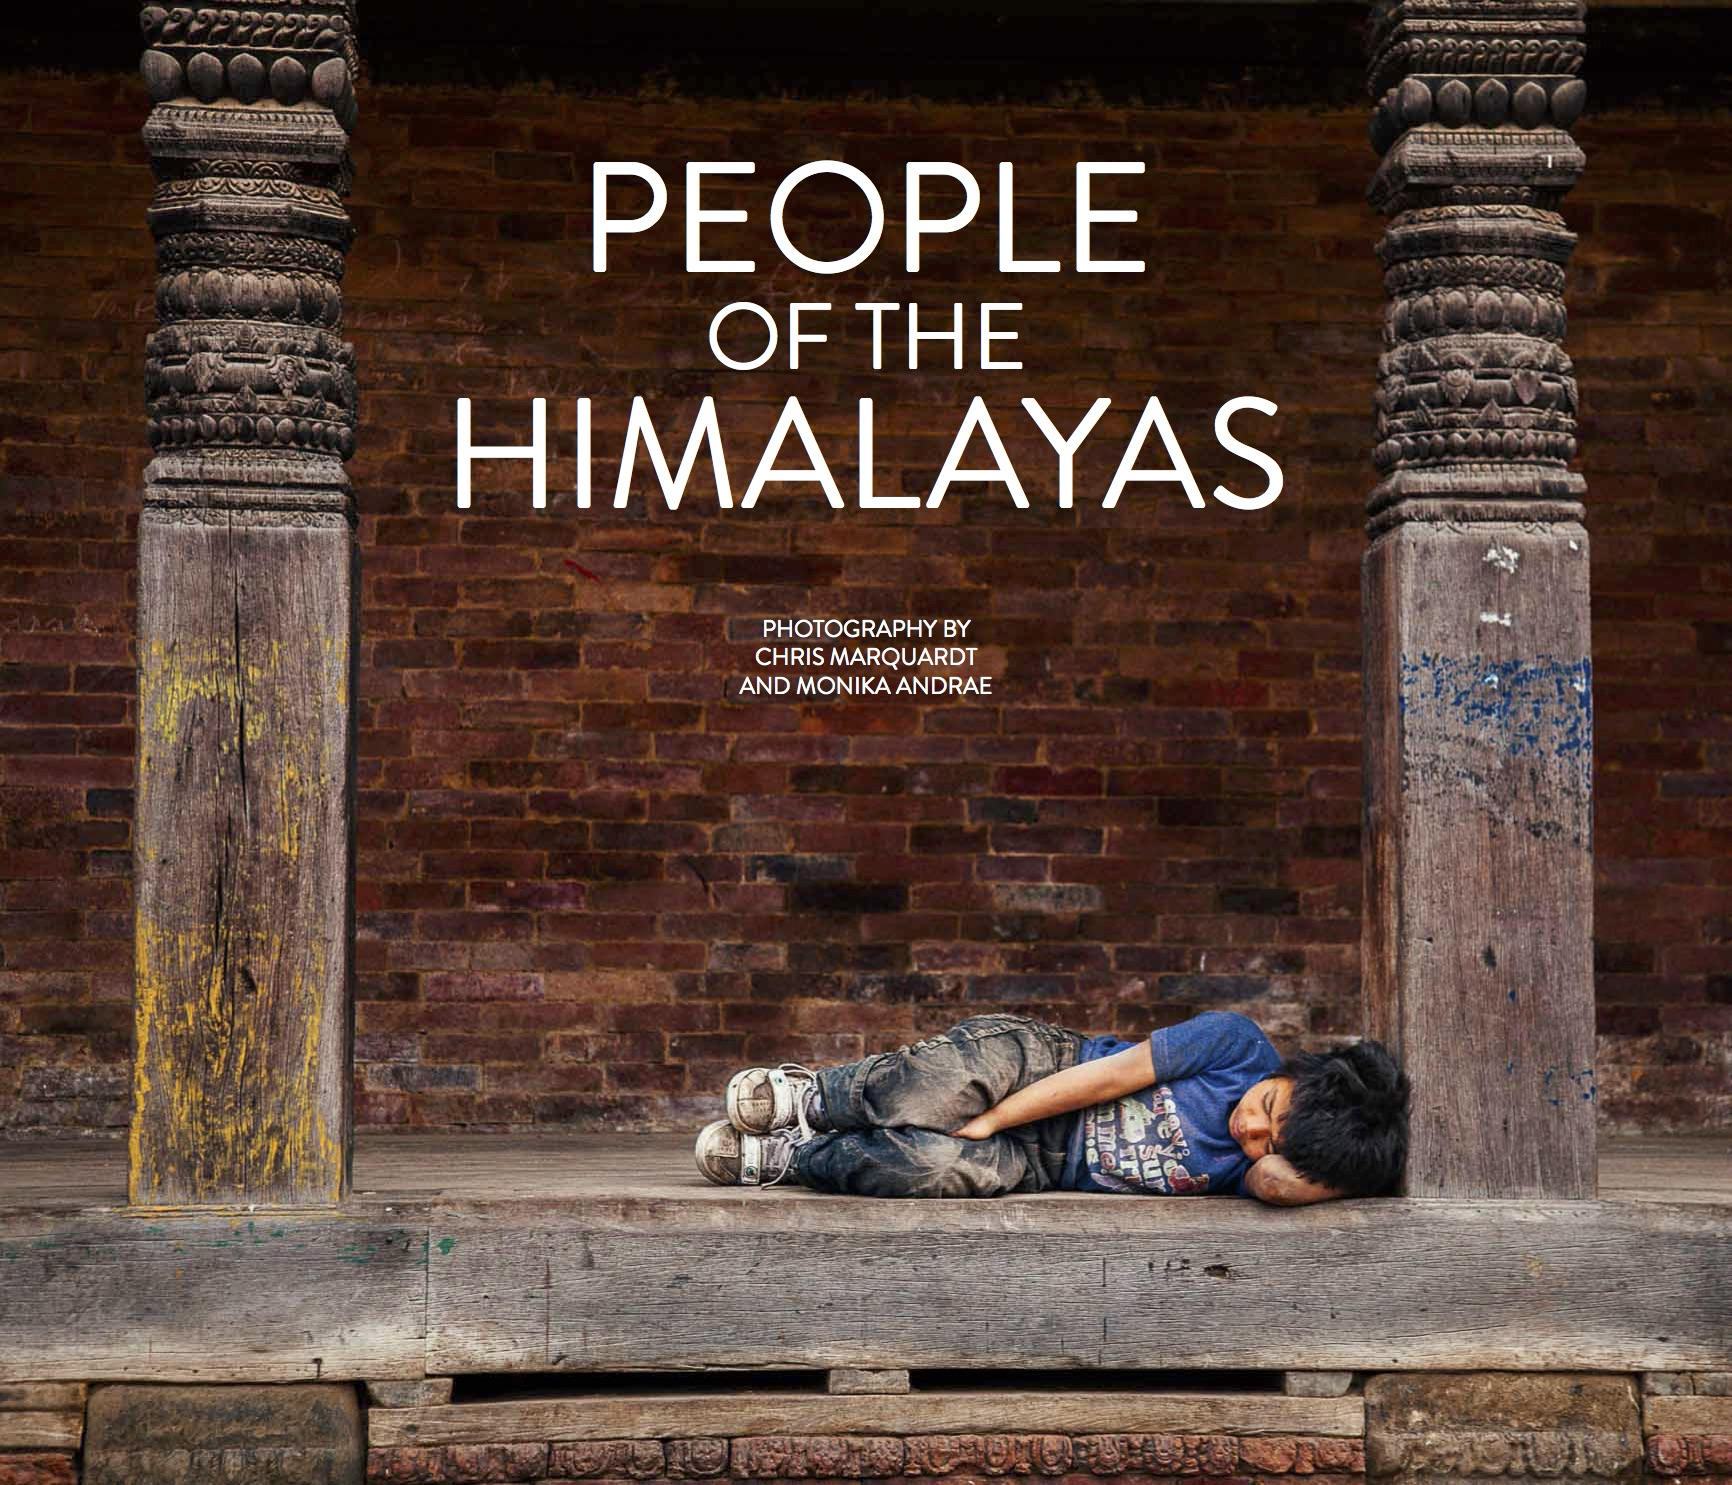 People of the Himalayas - ebook fundraiser